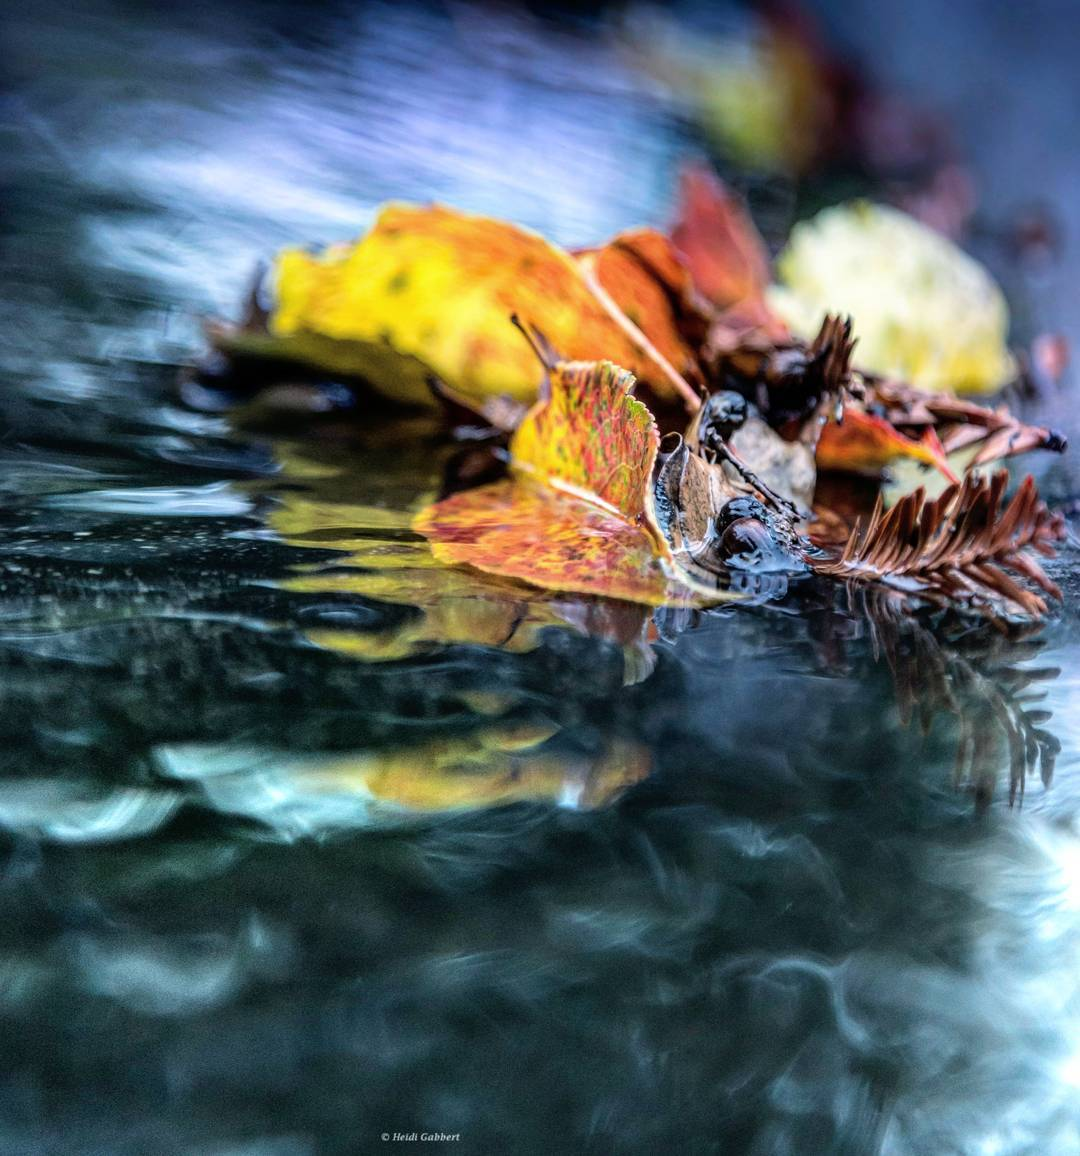 "<div class=""meta image-caption""><div class=""origin-logo origin-image none""><span>none</span></div><span class=""caption-text"">A leaf is seen floating in a puddle on Jan. 7, 2017. (heidisec/Instagram)</span></div>"